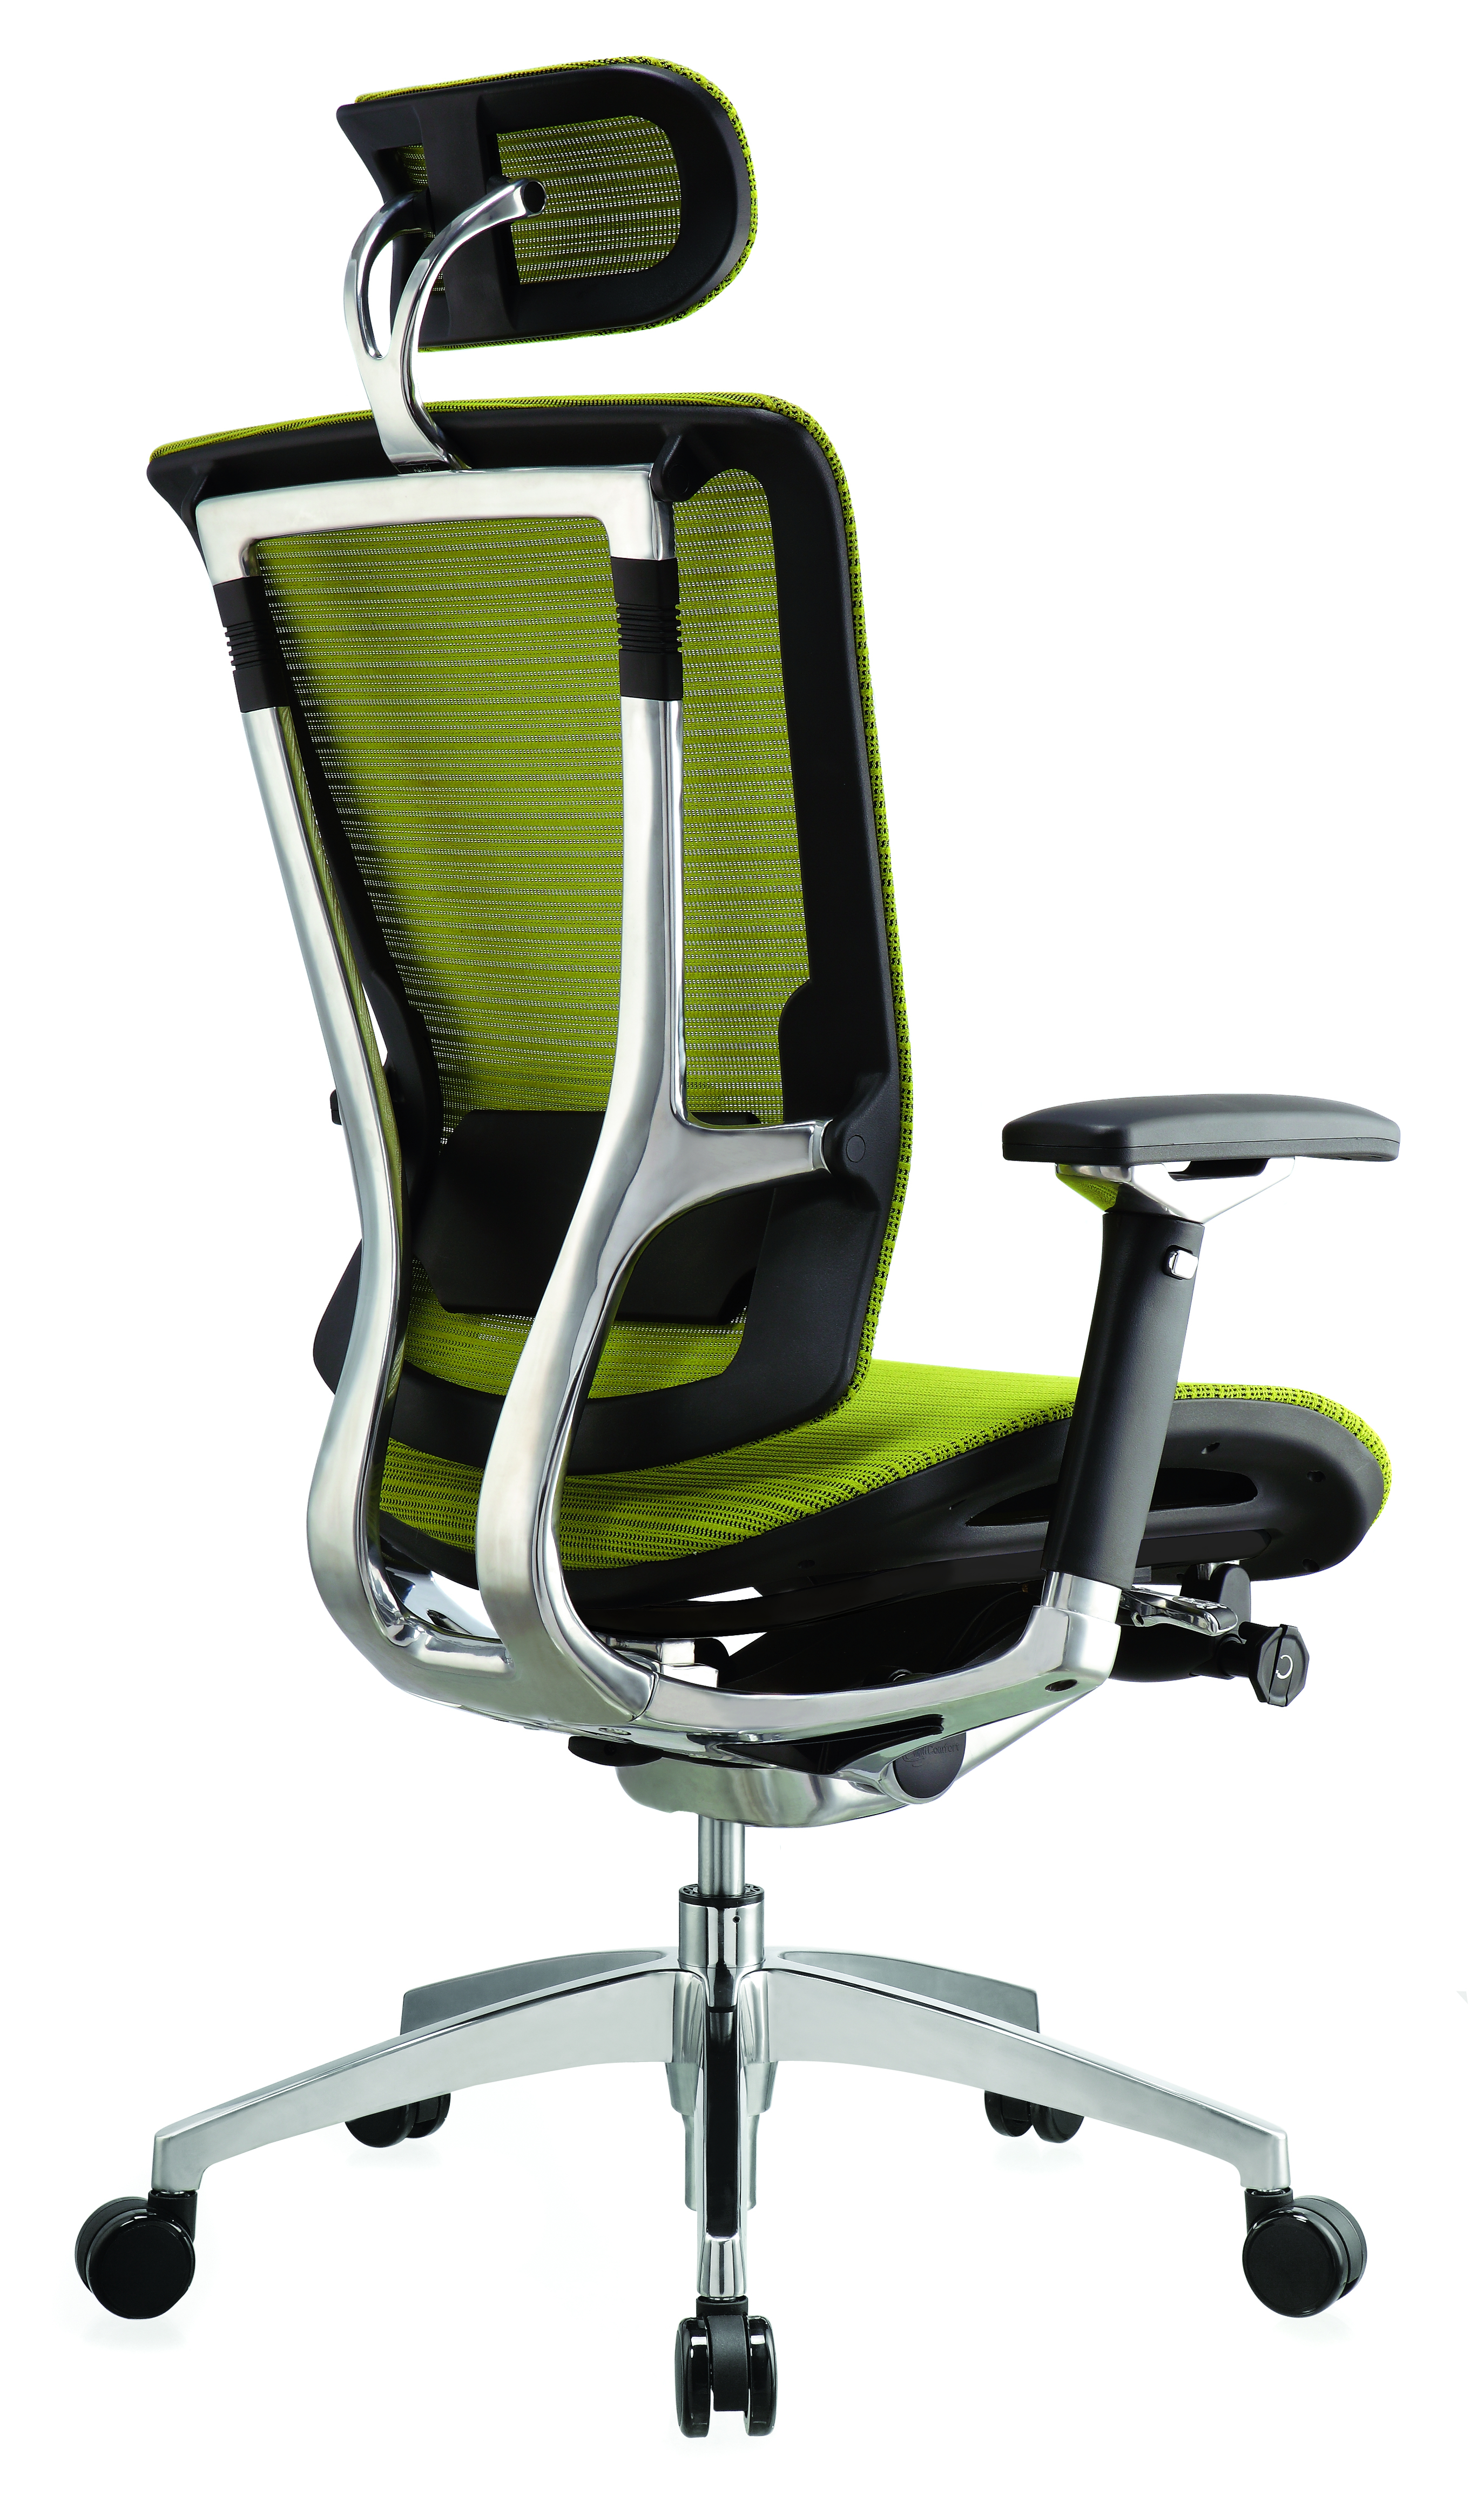 Chairs Best Work Chair For Productivity And Image Good Desk throughout sizing 2748 X 4620